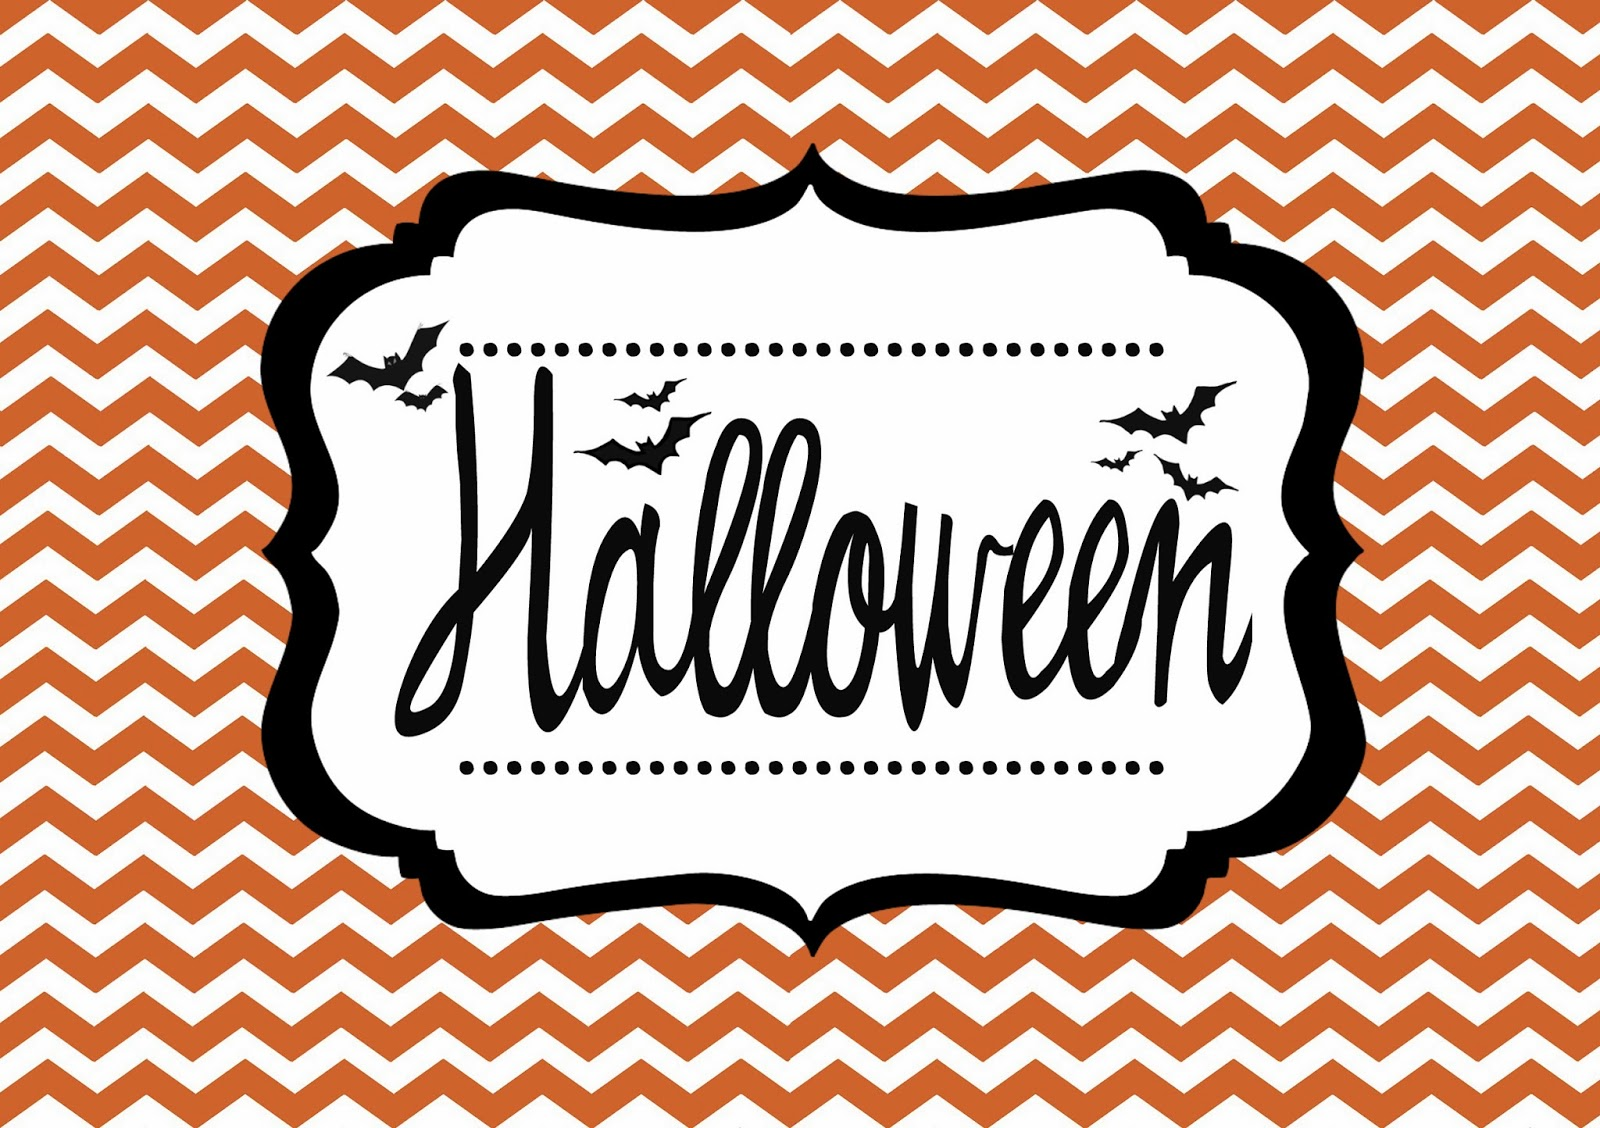 Ideas Para Decorar Halloween Recursos Ideas Para Decorar En Halloween Lluvia De Ideas